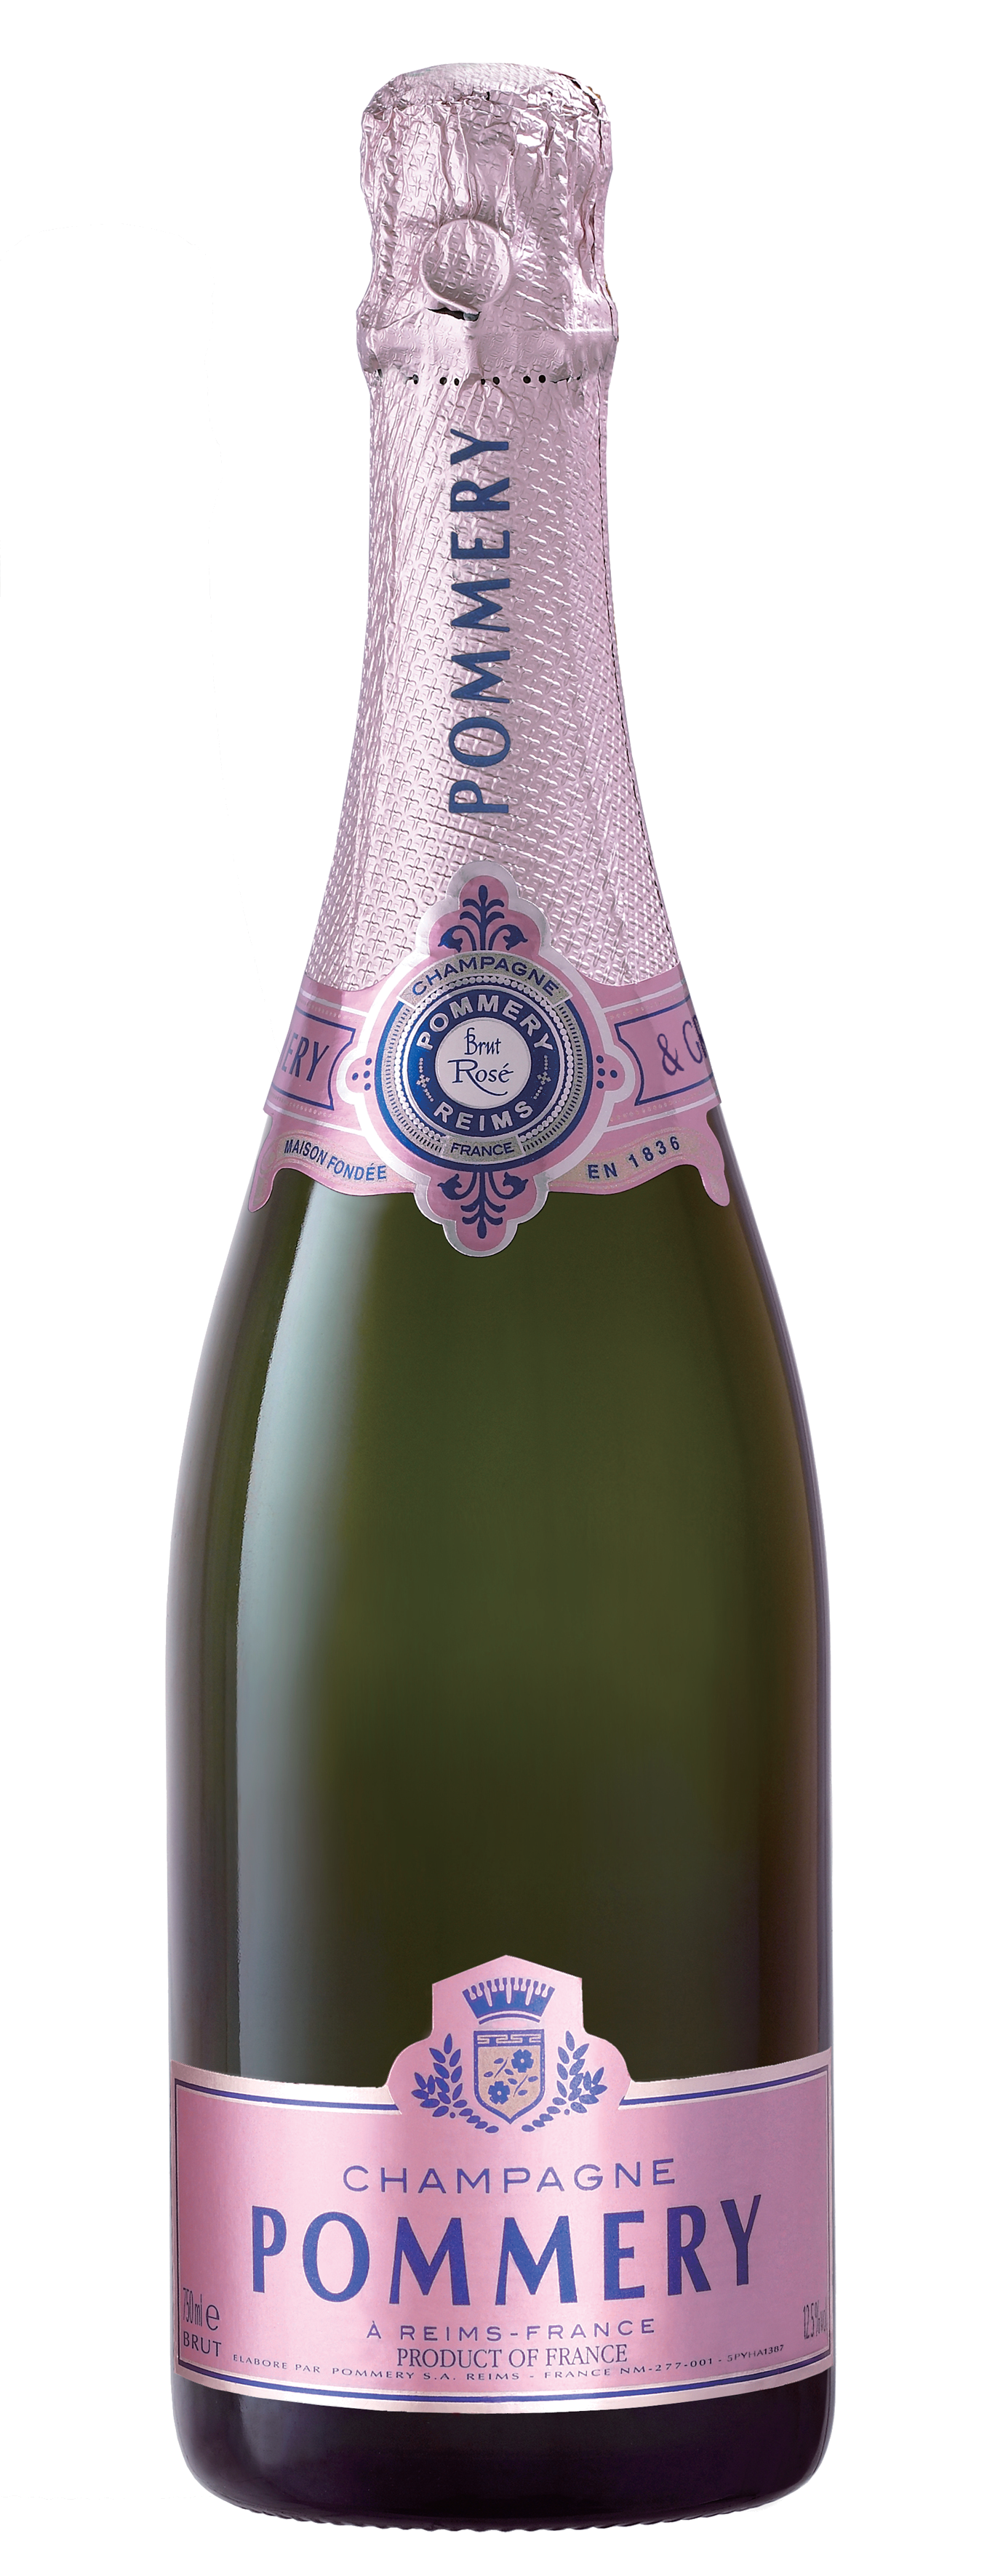 Champagne Pommery Brut Rosé - Champagne34% Chardonnay, 33% Pinot Noir, 33% Pinot Meunier + 7% Pinot Noir Grand cru BouzyNT$ 2,800這款粉紅是經典Pommery Brut Royal的改造酒款,通過用心釀造的紅葡萄酒,和多種不同白葡萄品種,絕大多比例為Chardonnay,所釀造的白葡萄酒所調配而成。精美的淡粉紅色,略帶鮭魚色調。細而持久的氣泡。紅色漿果香氣,卓越的新鮮細膩,增加其圓潤和柔軟。非常微妙的粉紅氣泡特徵:柔軟、細膩、新鮮和活力。This rosé is a faithful variation of classic Pommery Brut Royal created through the assembly of a red wine made with this mind, and different wines vinified in white, within a great proportion of Chardonnay. Delicate pale pink with slightly salmon tones. Fine and persistent bubbles. Small red berries suggesting roundness and softness enhanced by a fine freshness in a world of distinction. Very subtle rosé character: supple and finely robust with and appealing freshness and liveliness.得獎紀錄:金牌獎 Gold International Wine Challenge 2018